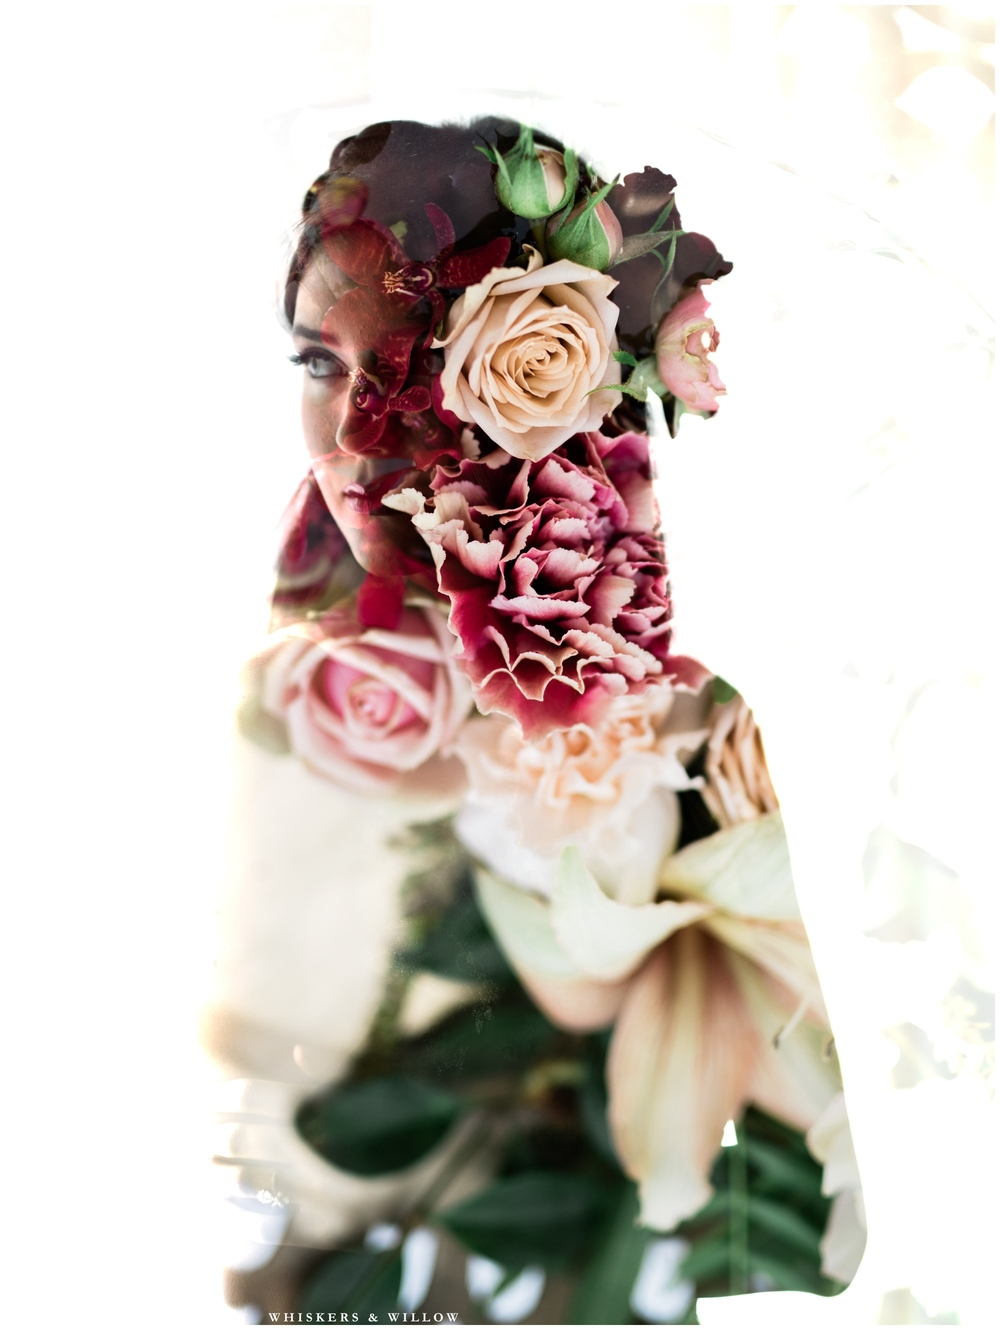 Romantic Double Exposure | San Diego Fine Art Wedding Photography | Whiskers and Willow Photography